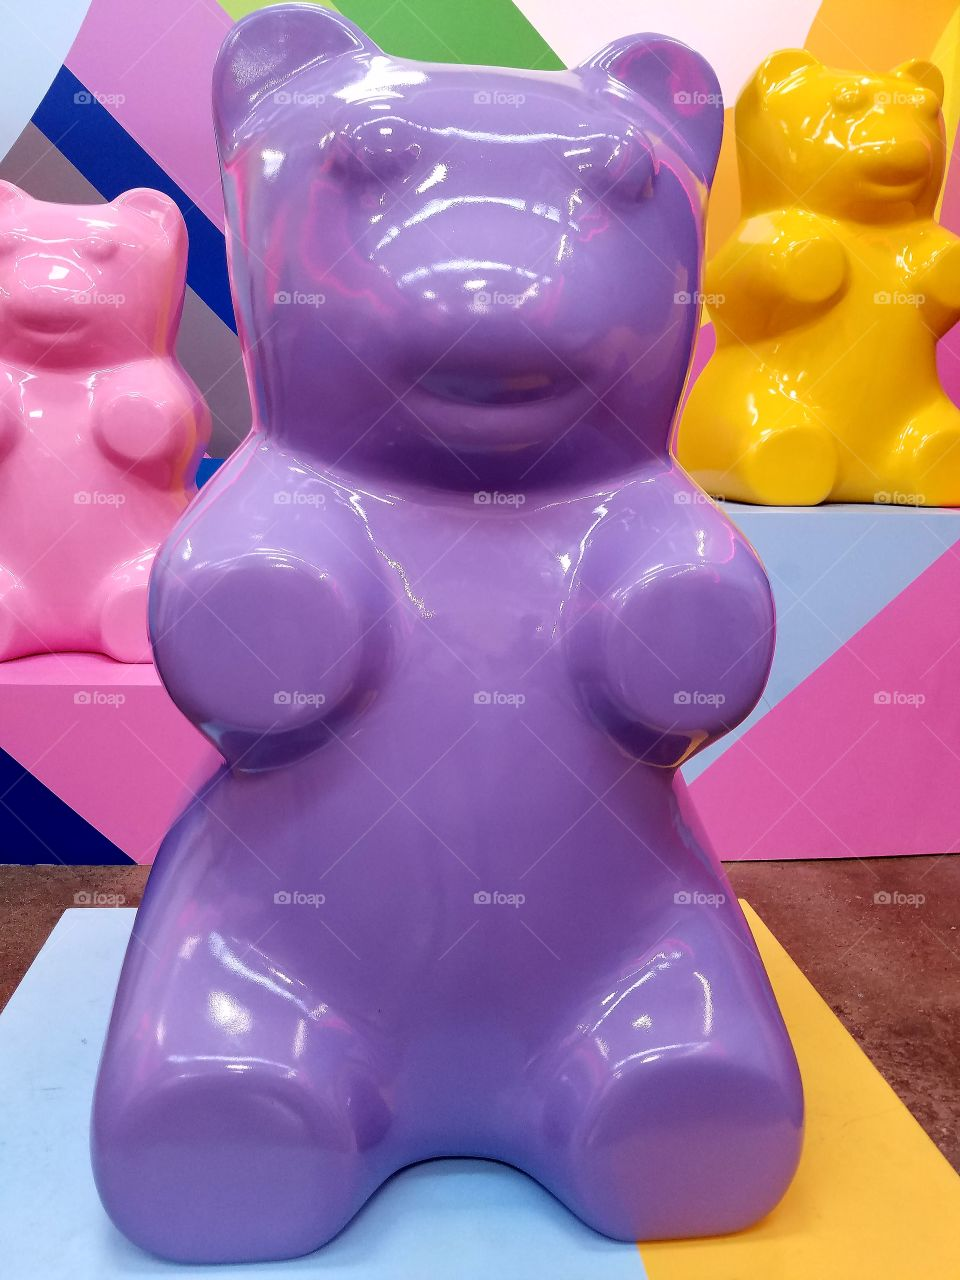 Big colorful toy bears